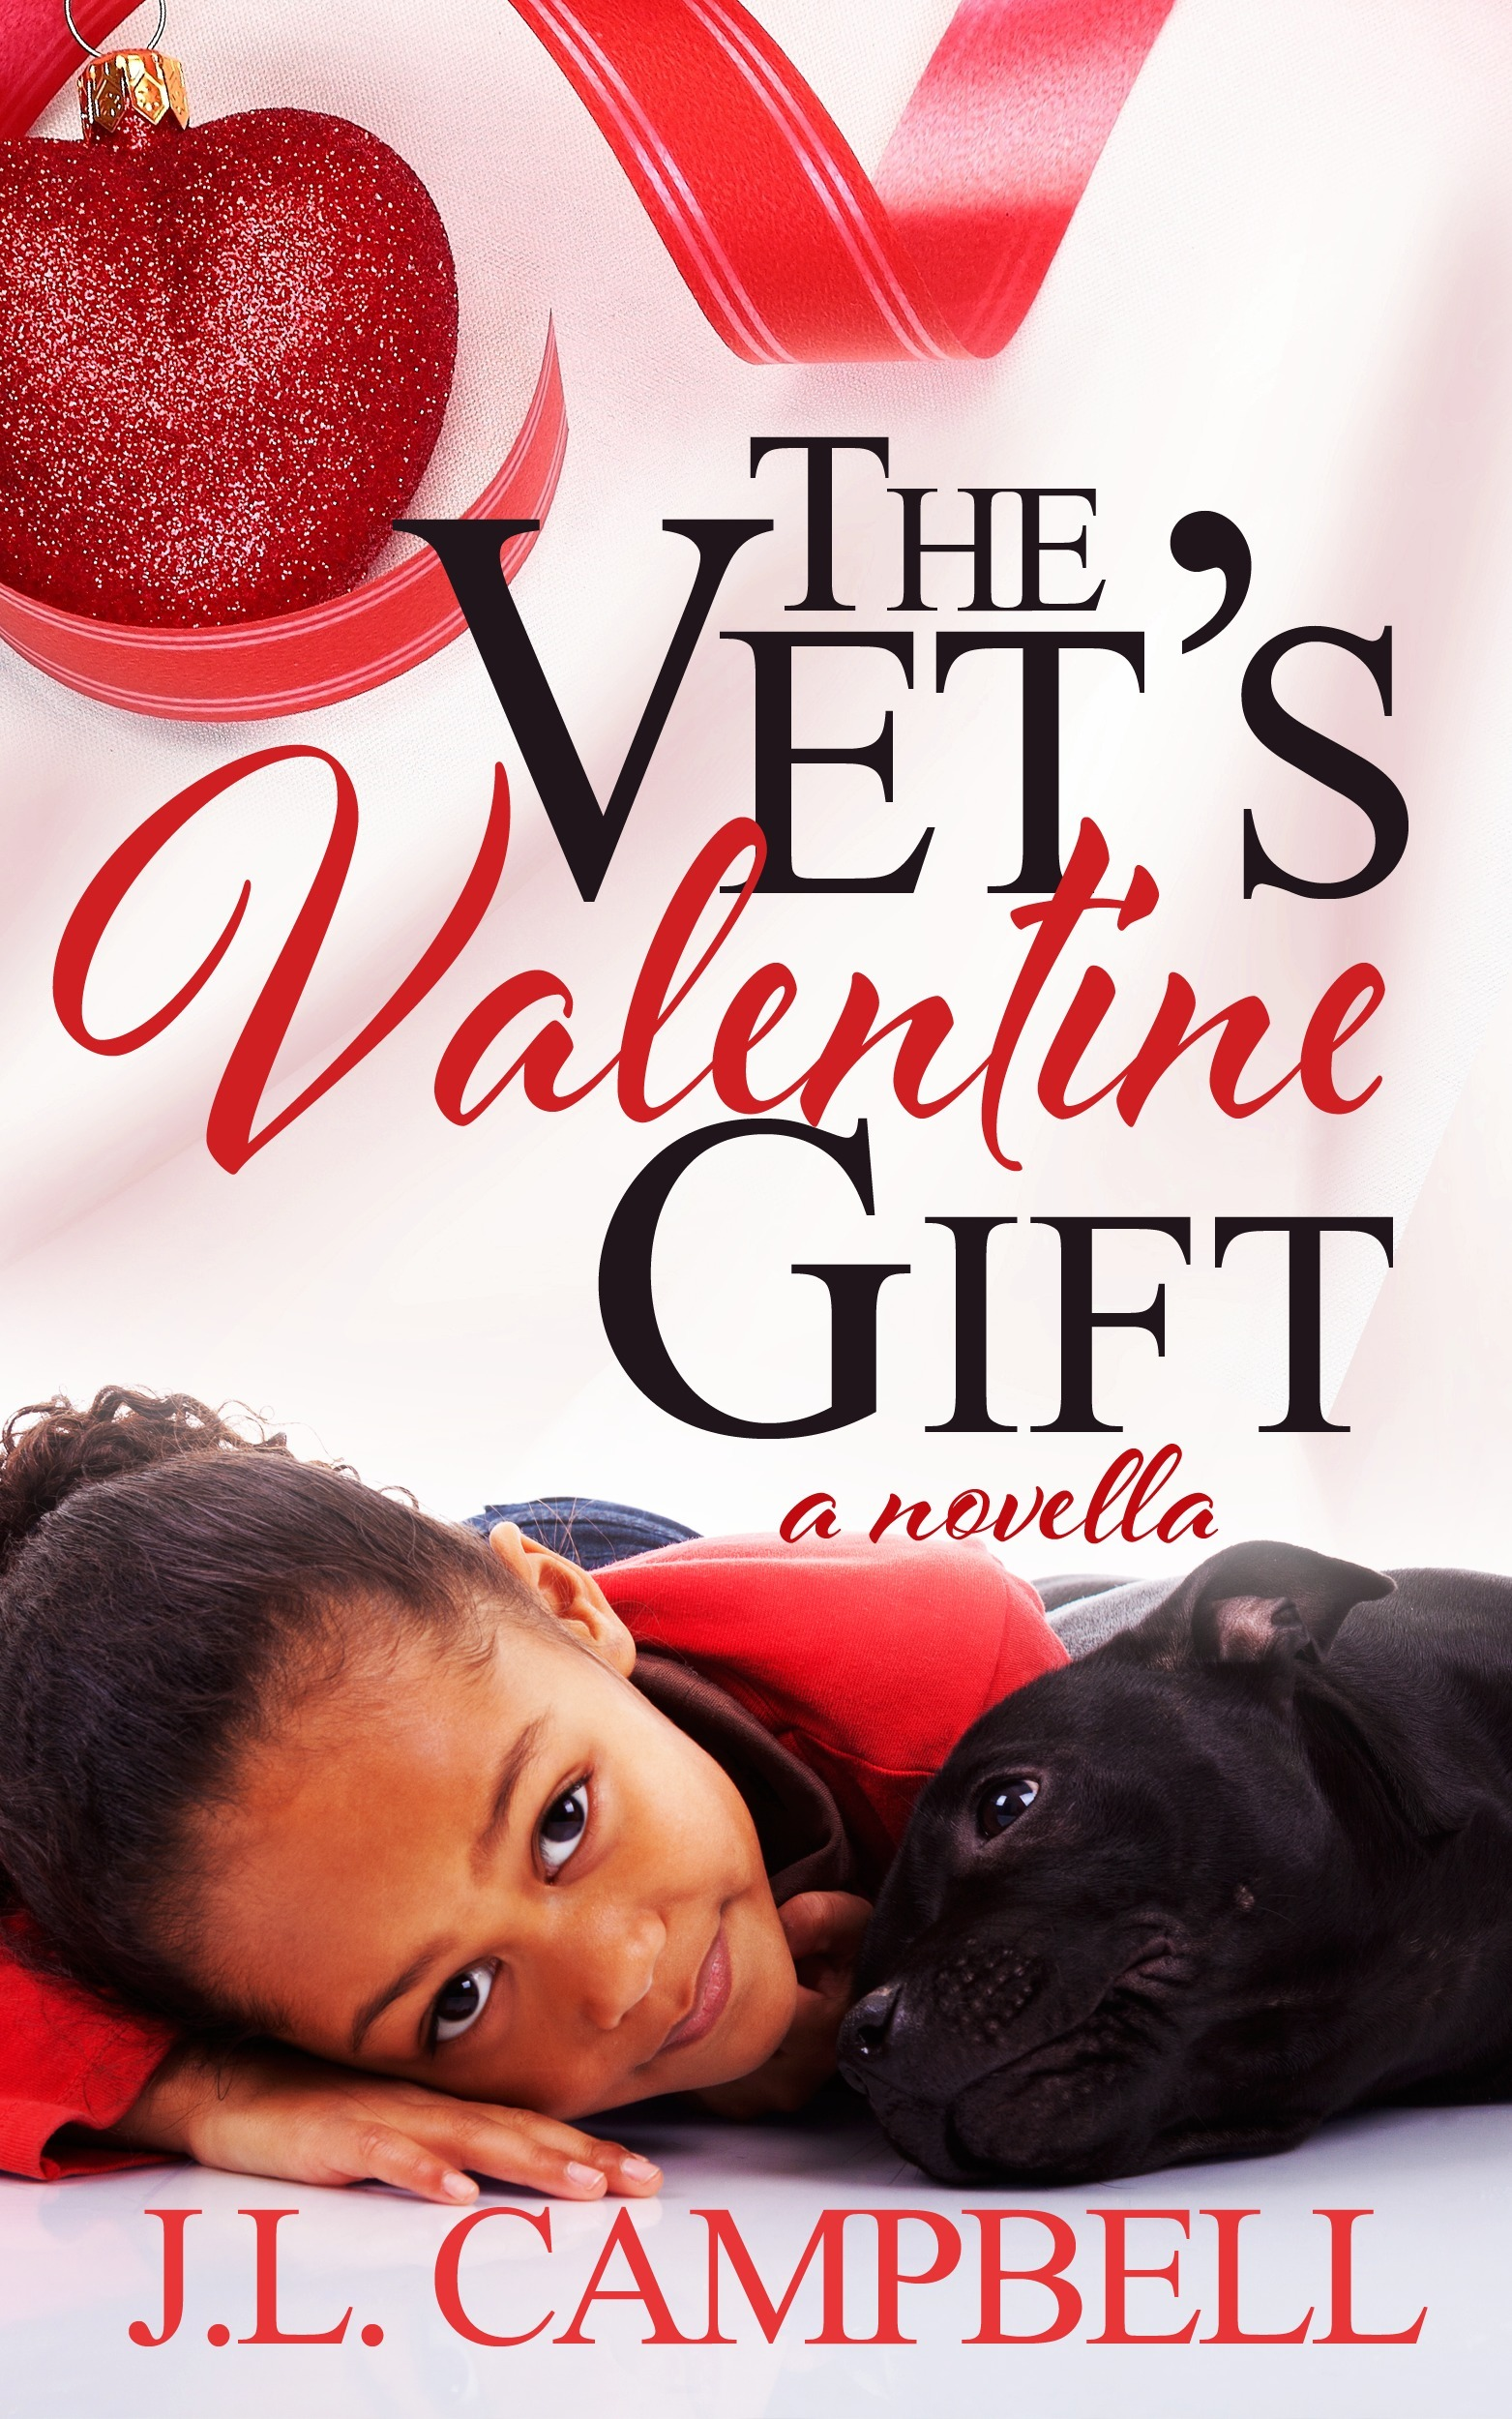 The Vets Valentine Gift J.L. Campbell